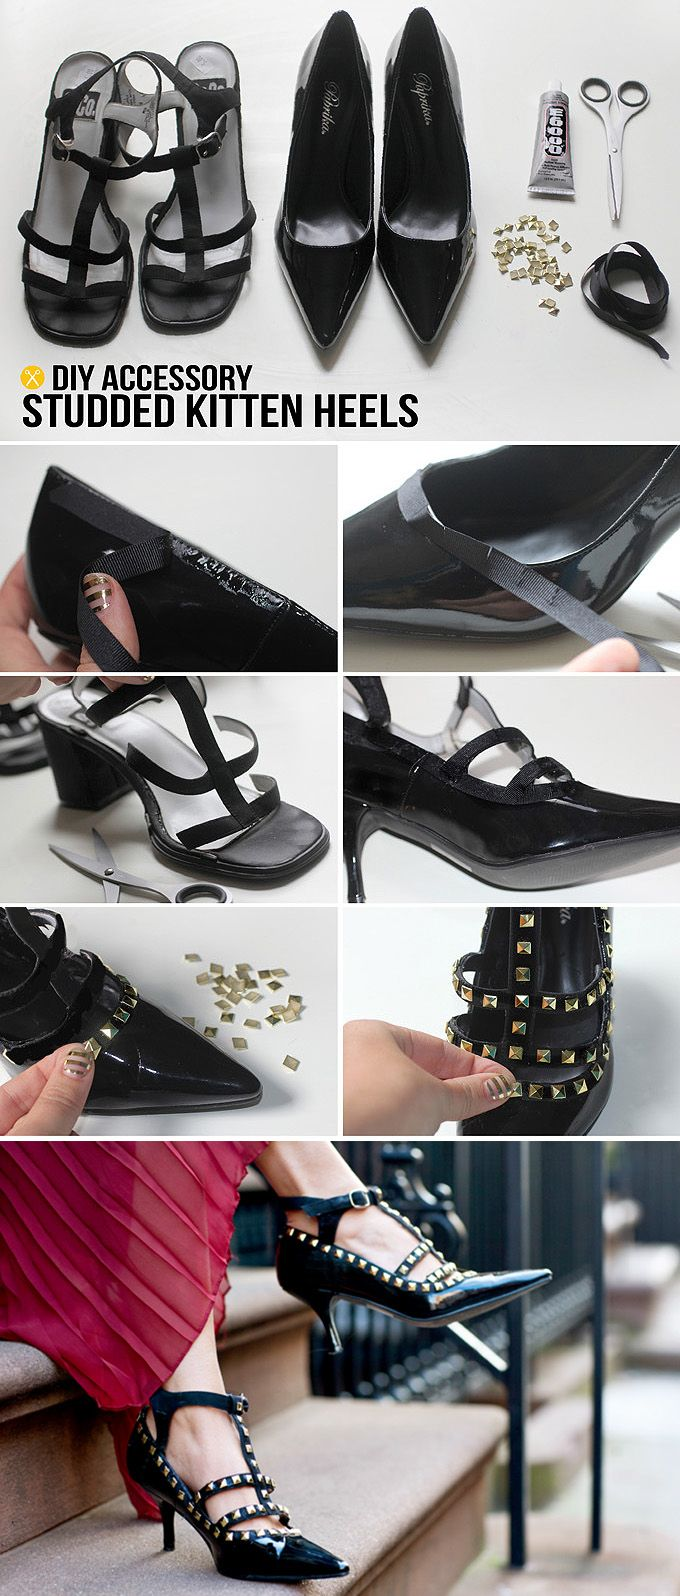 I Spy Diy My Diy Studded Kitten Heels Diy Heels Diy Shoes Shoe Makeover